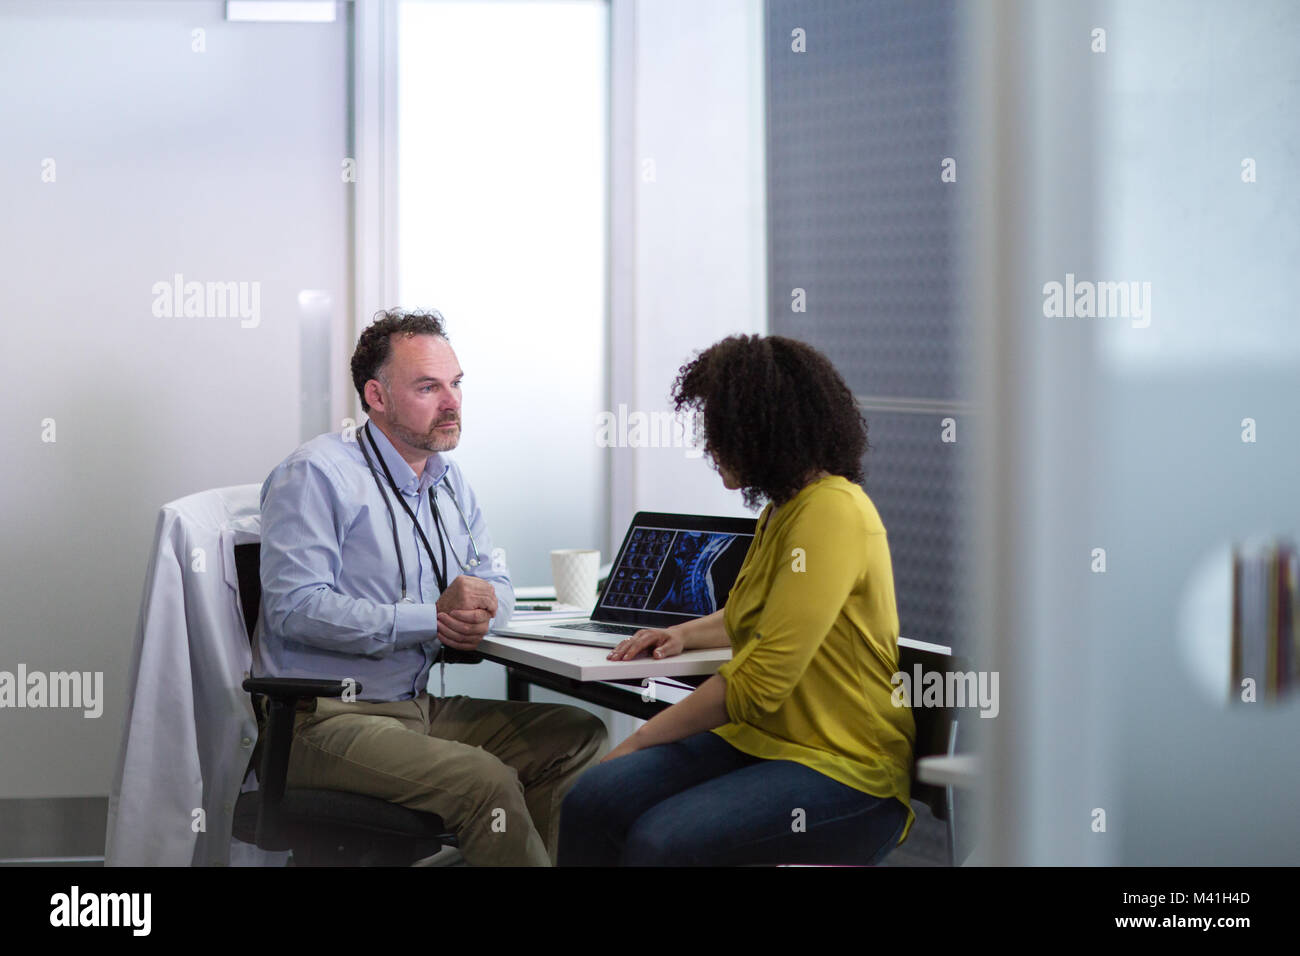 Male Medical Doctor explaining xray results to patient - Stock Image